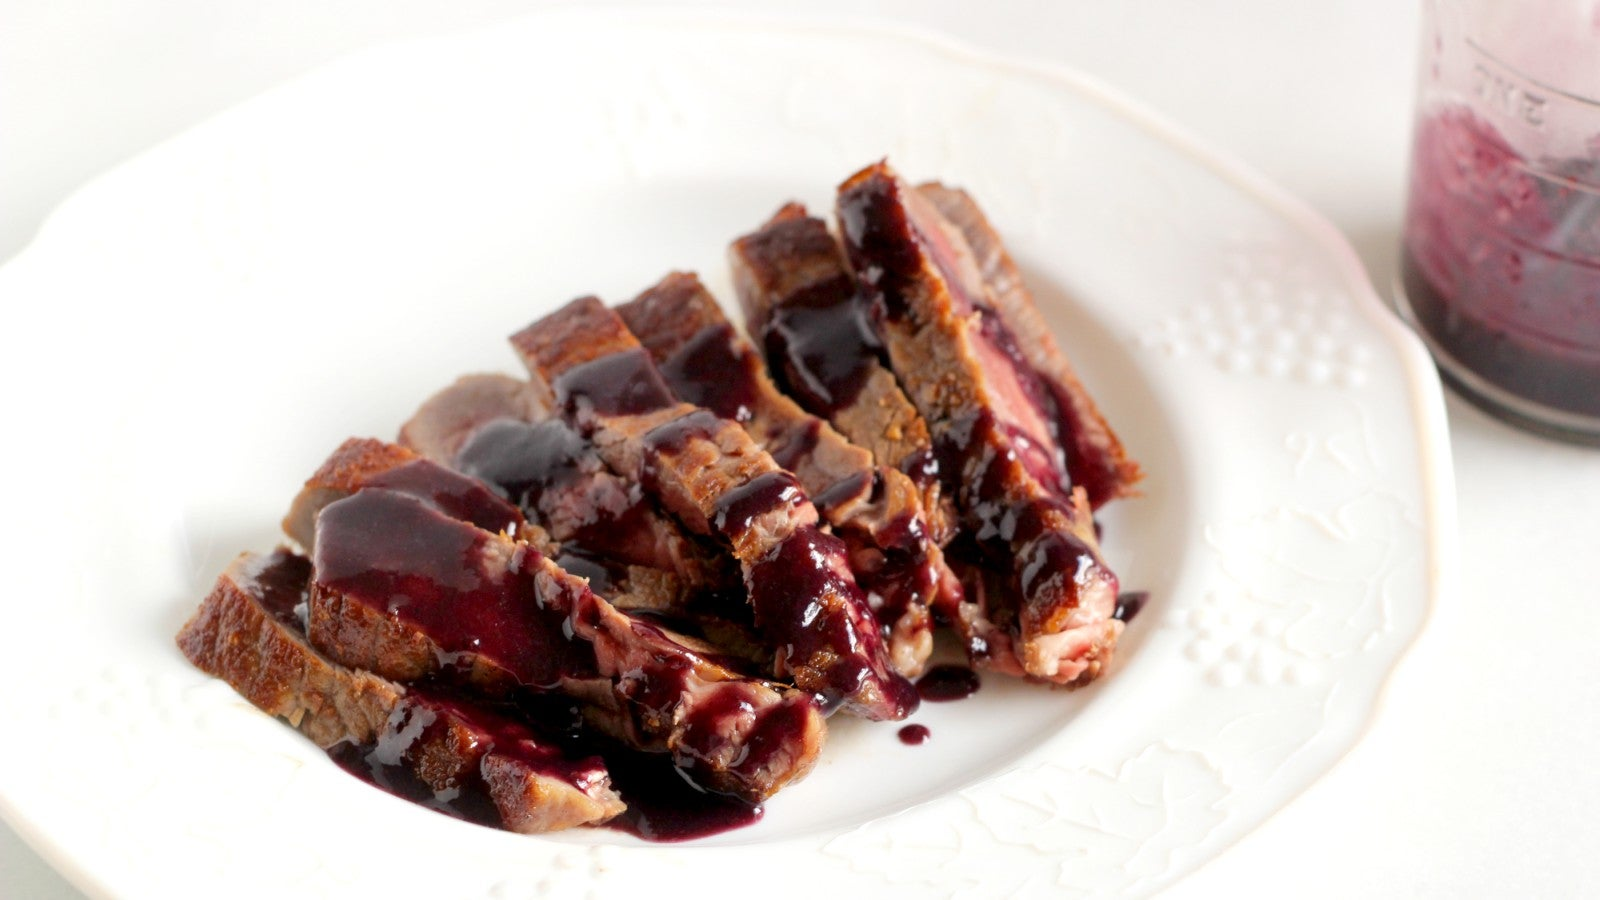 This Blueberry Pan Sauce Is Good On Any Meat